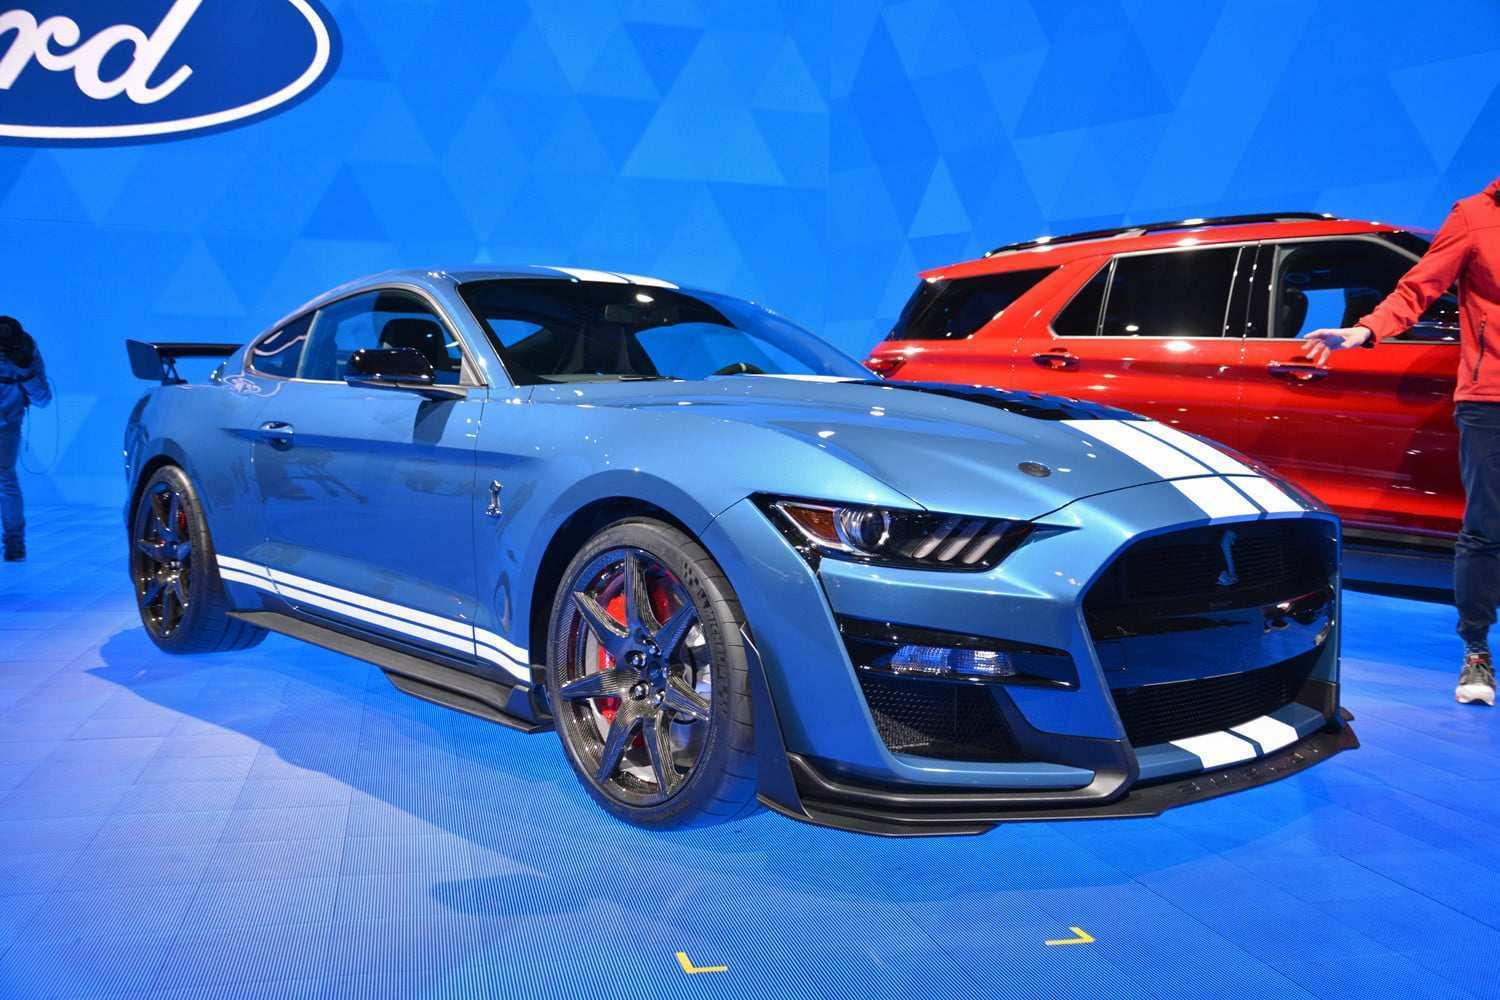 2020 ford mustang gt350 car review car review. Black Bedroom Furniture Sets. Home Design Ideas